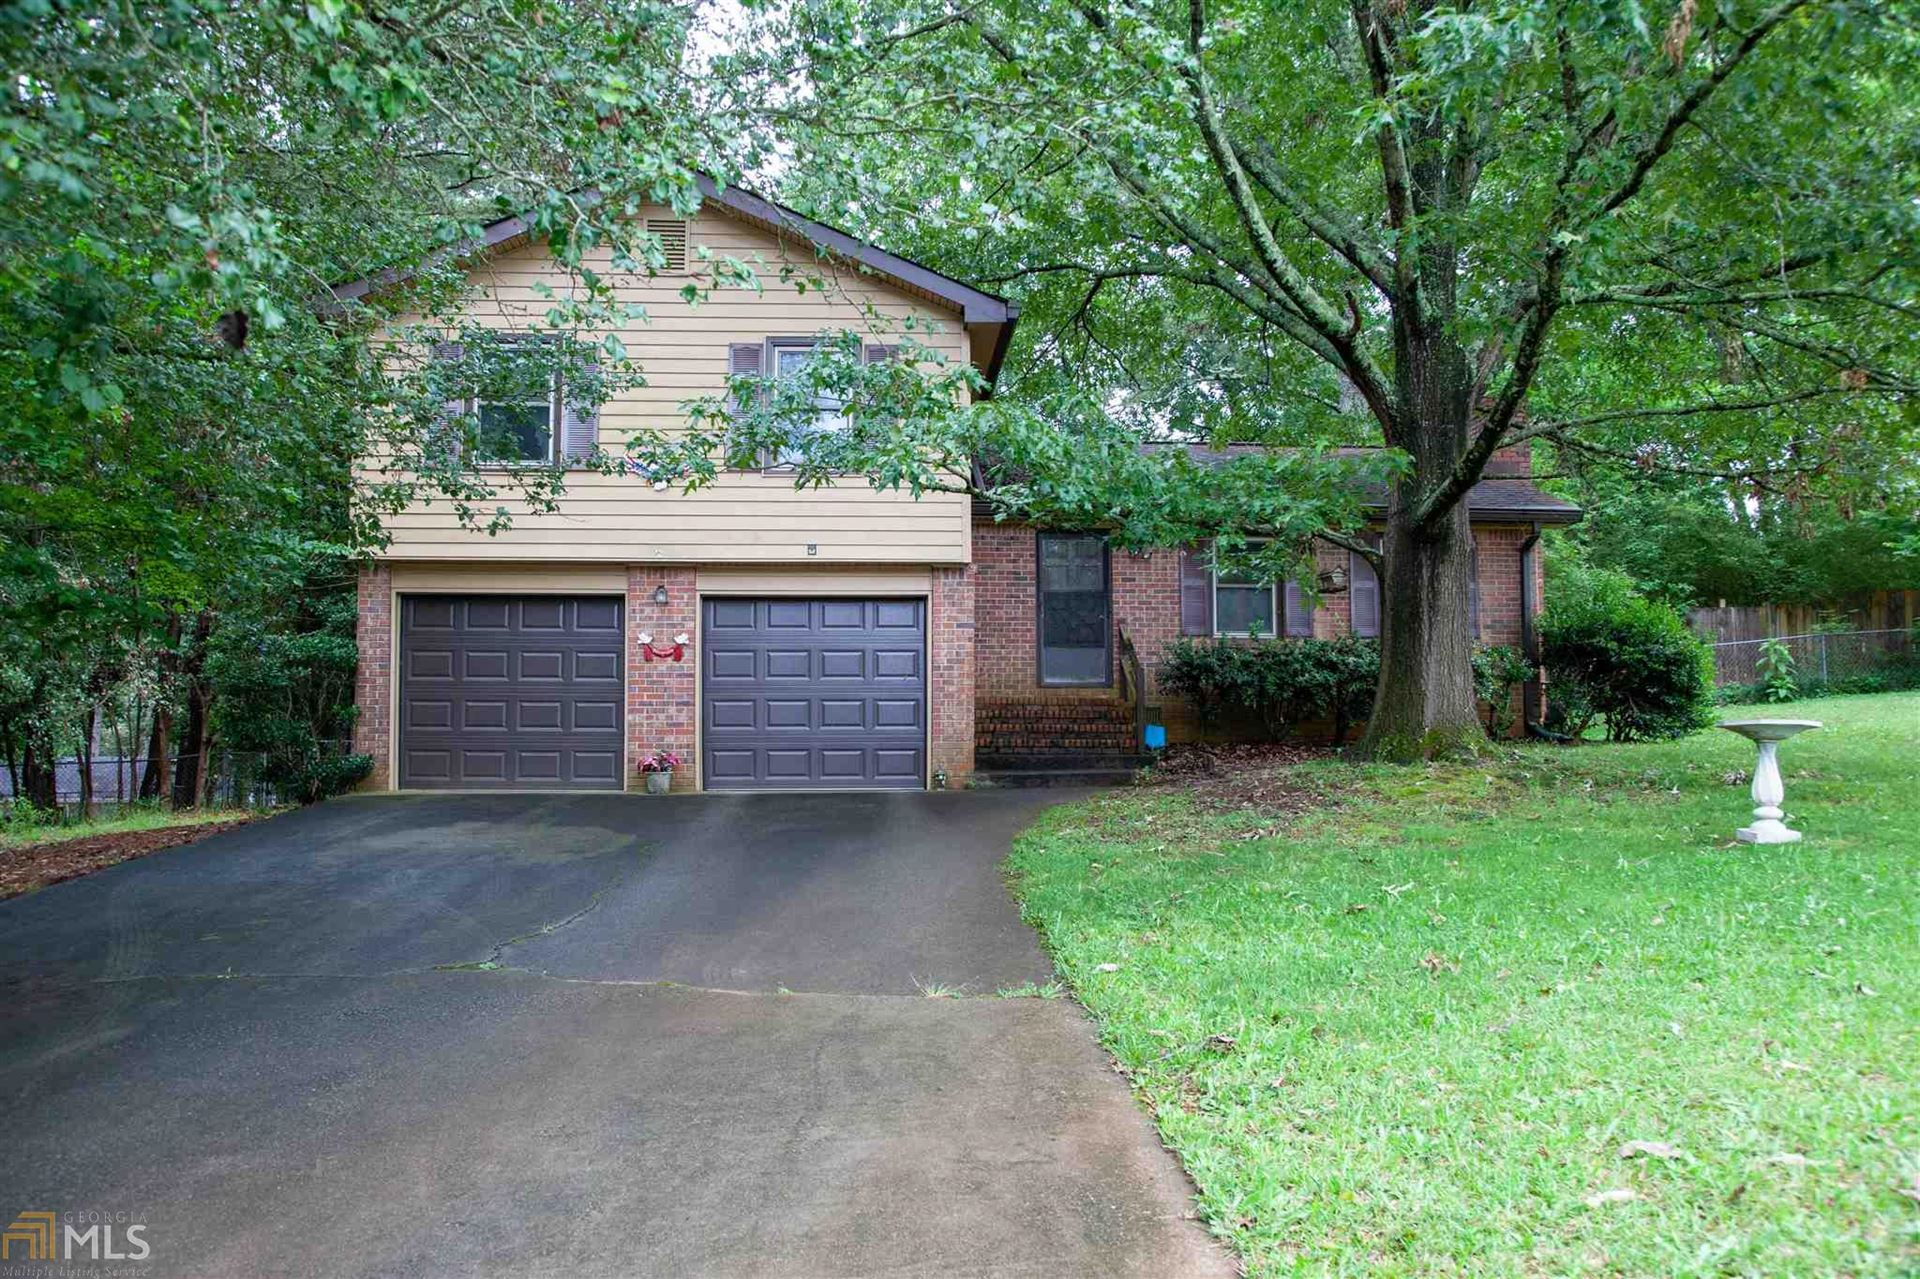 557 Greenview Ave, Conyers, GA 30094 - #: 8792032